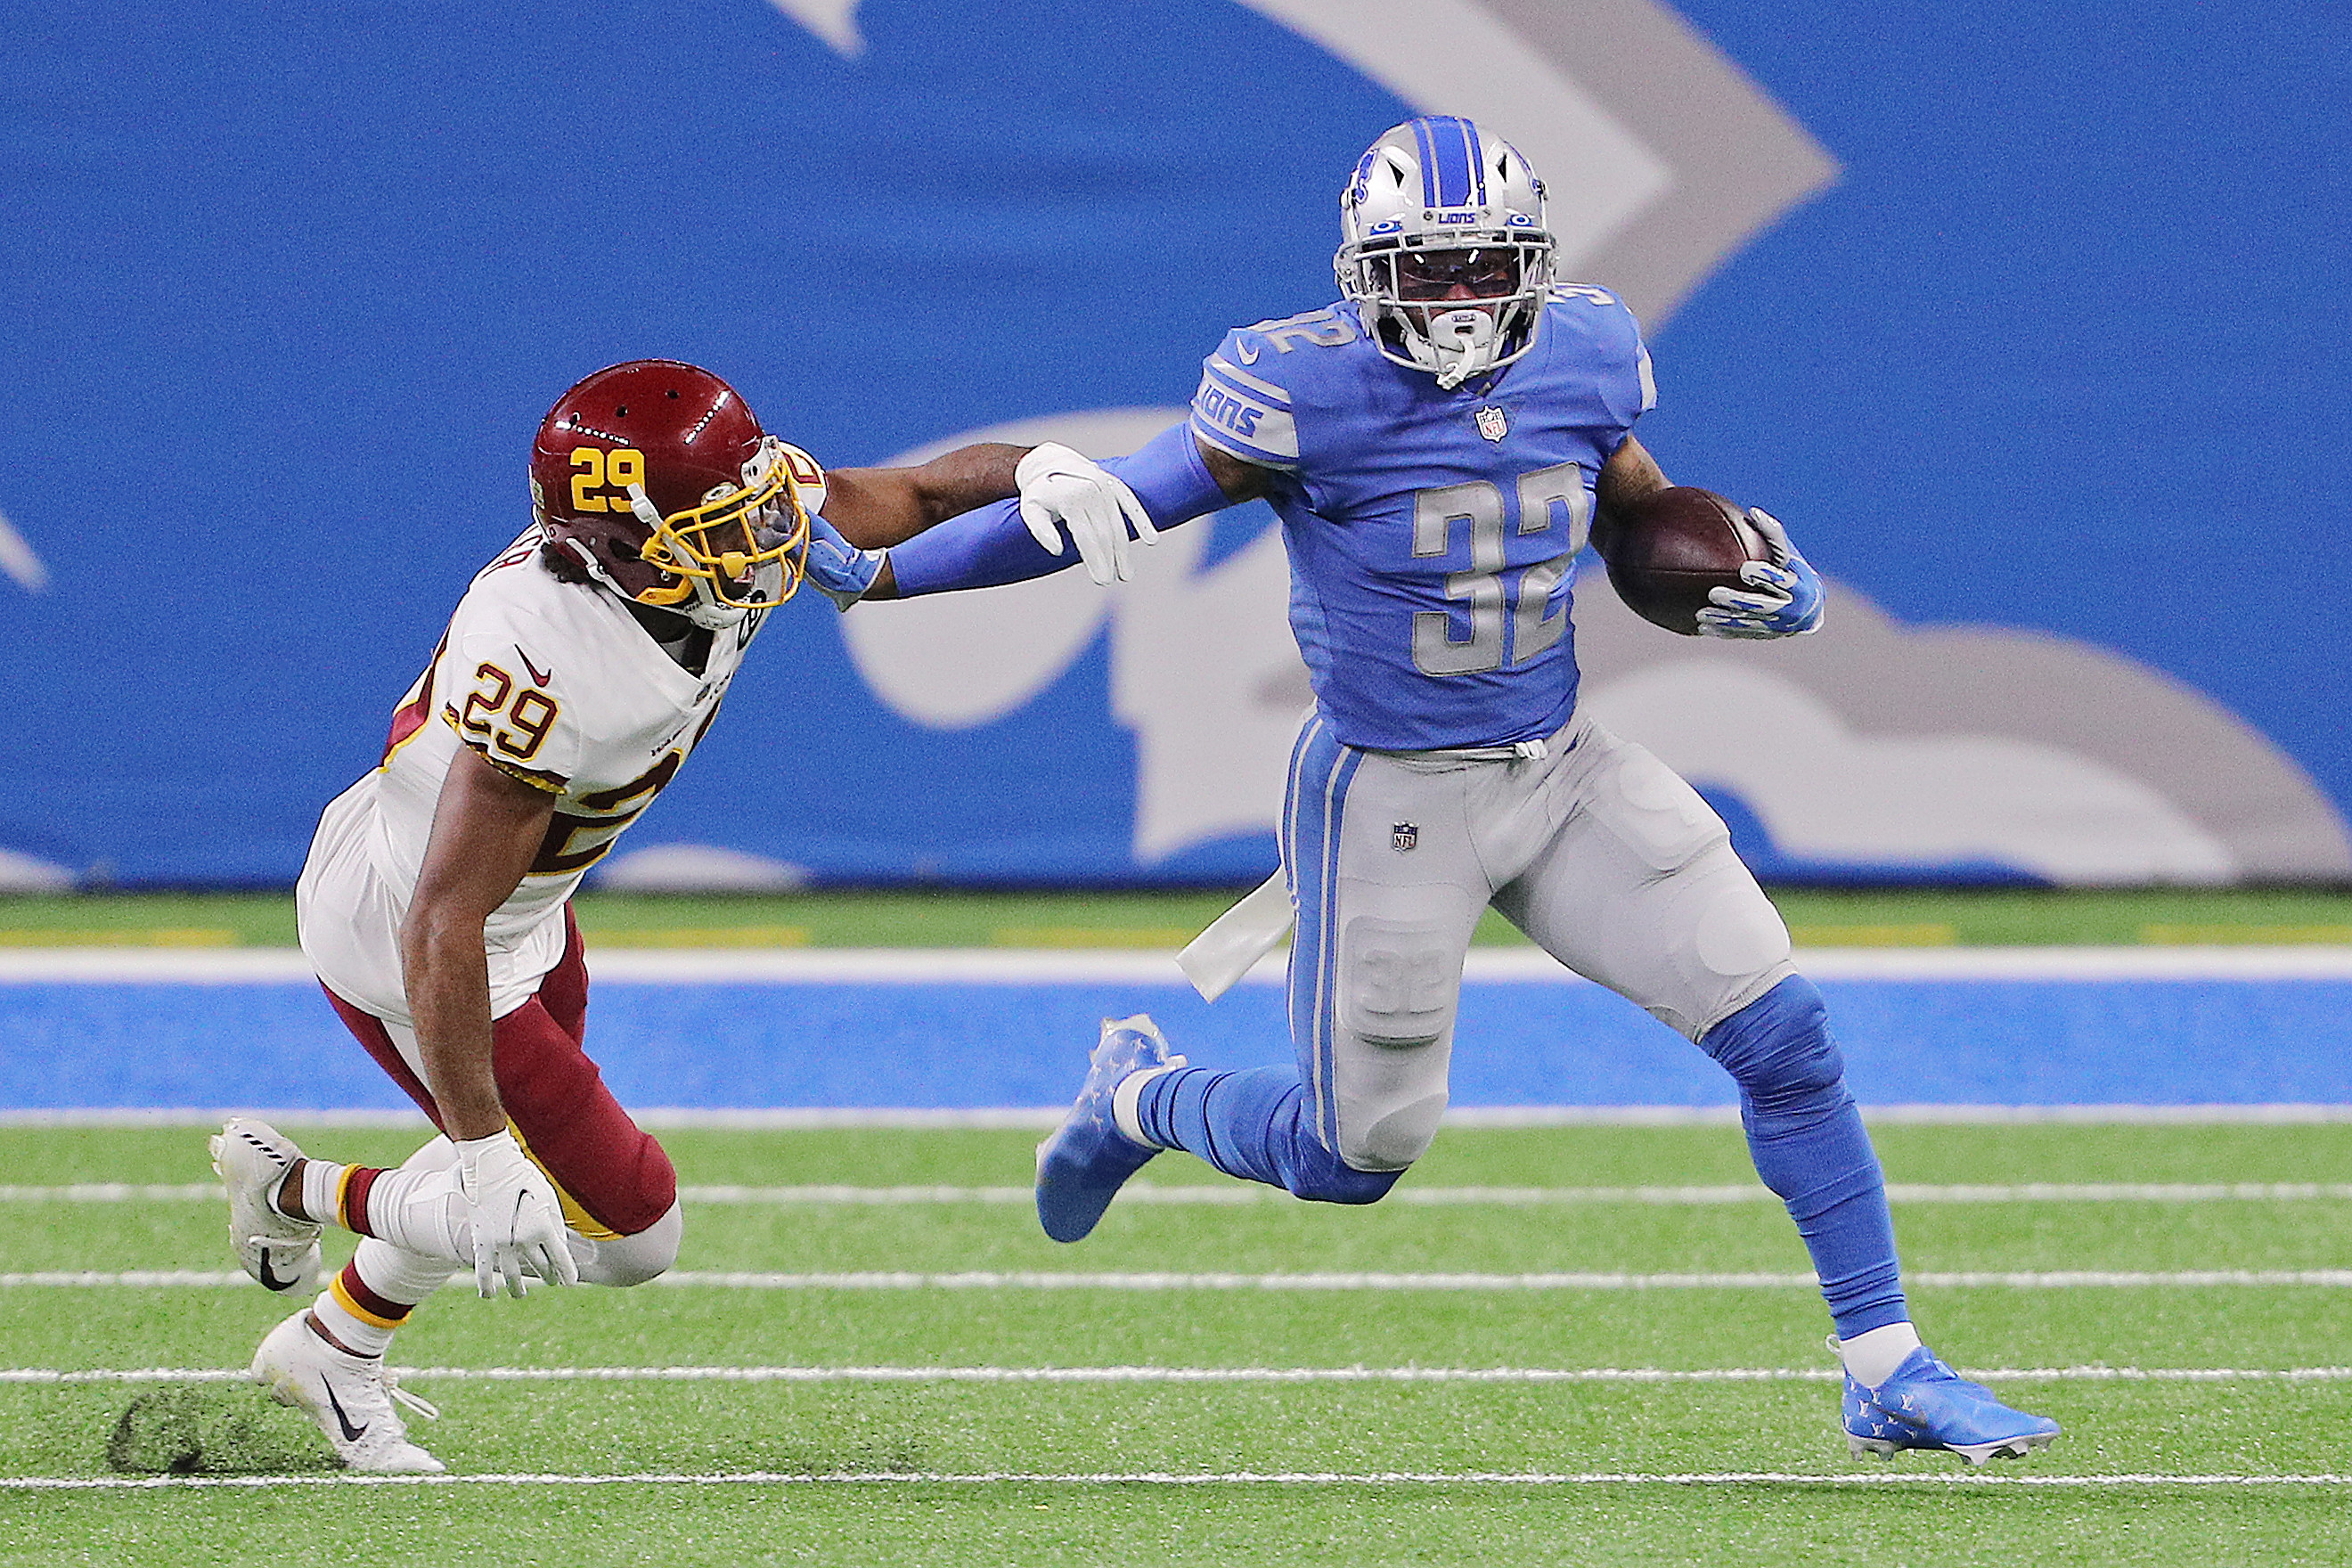 Lions rookie RB D'Andre Swift's Week 13 status trending in right direction  after all - mlive.com